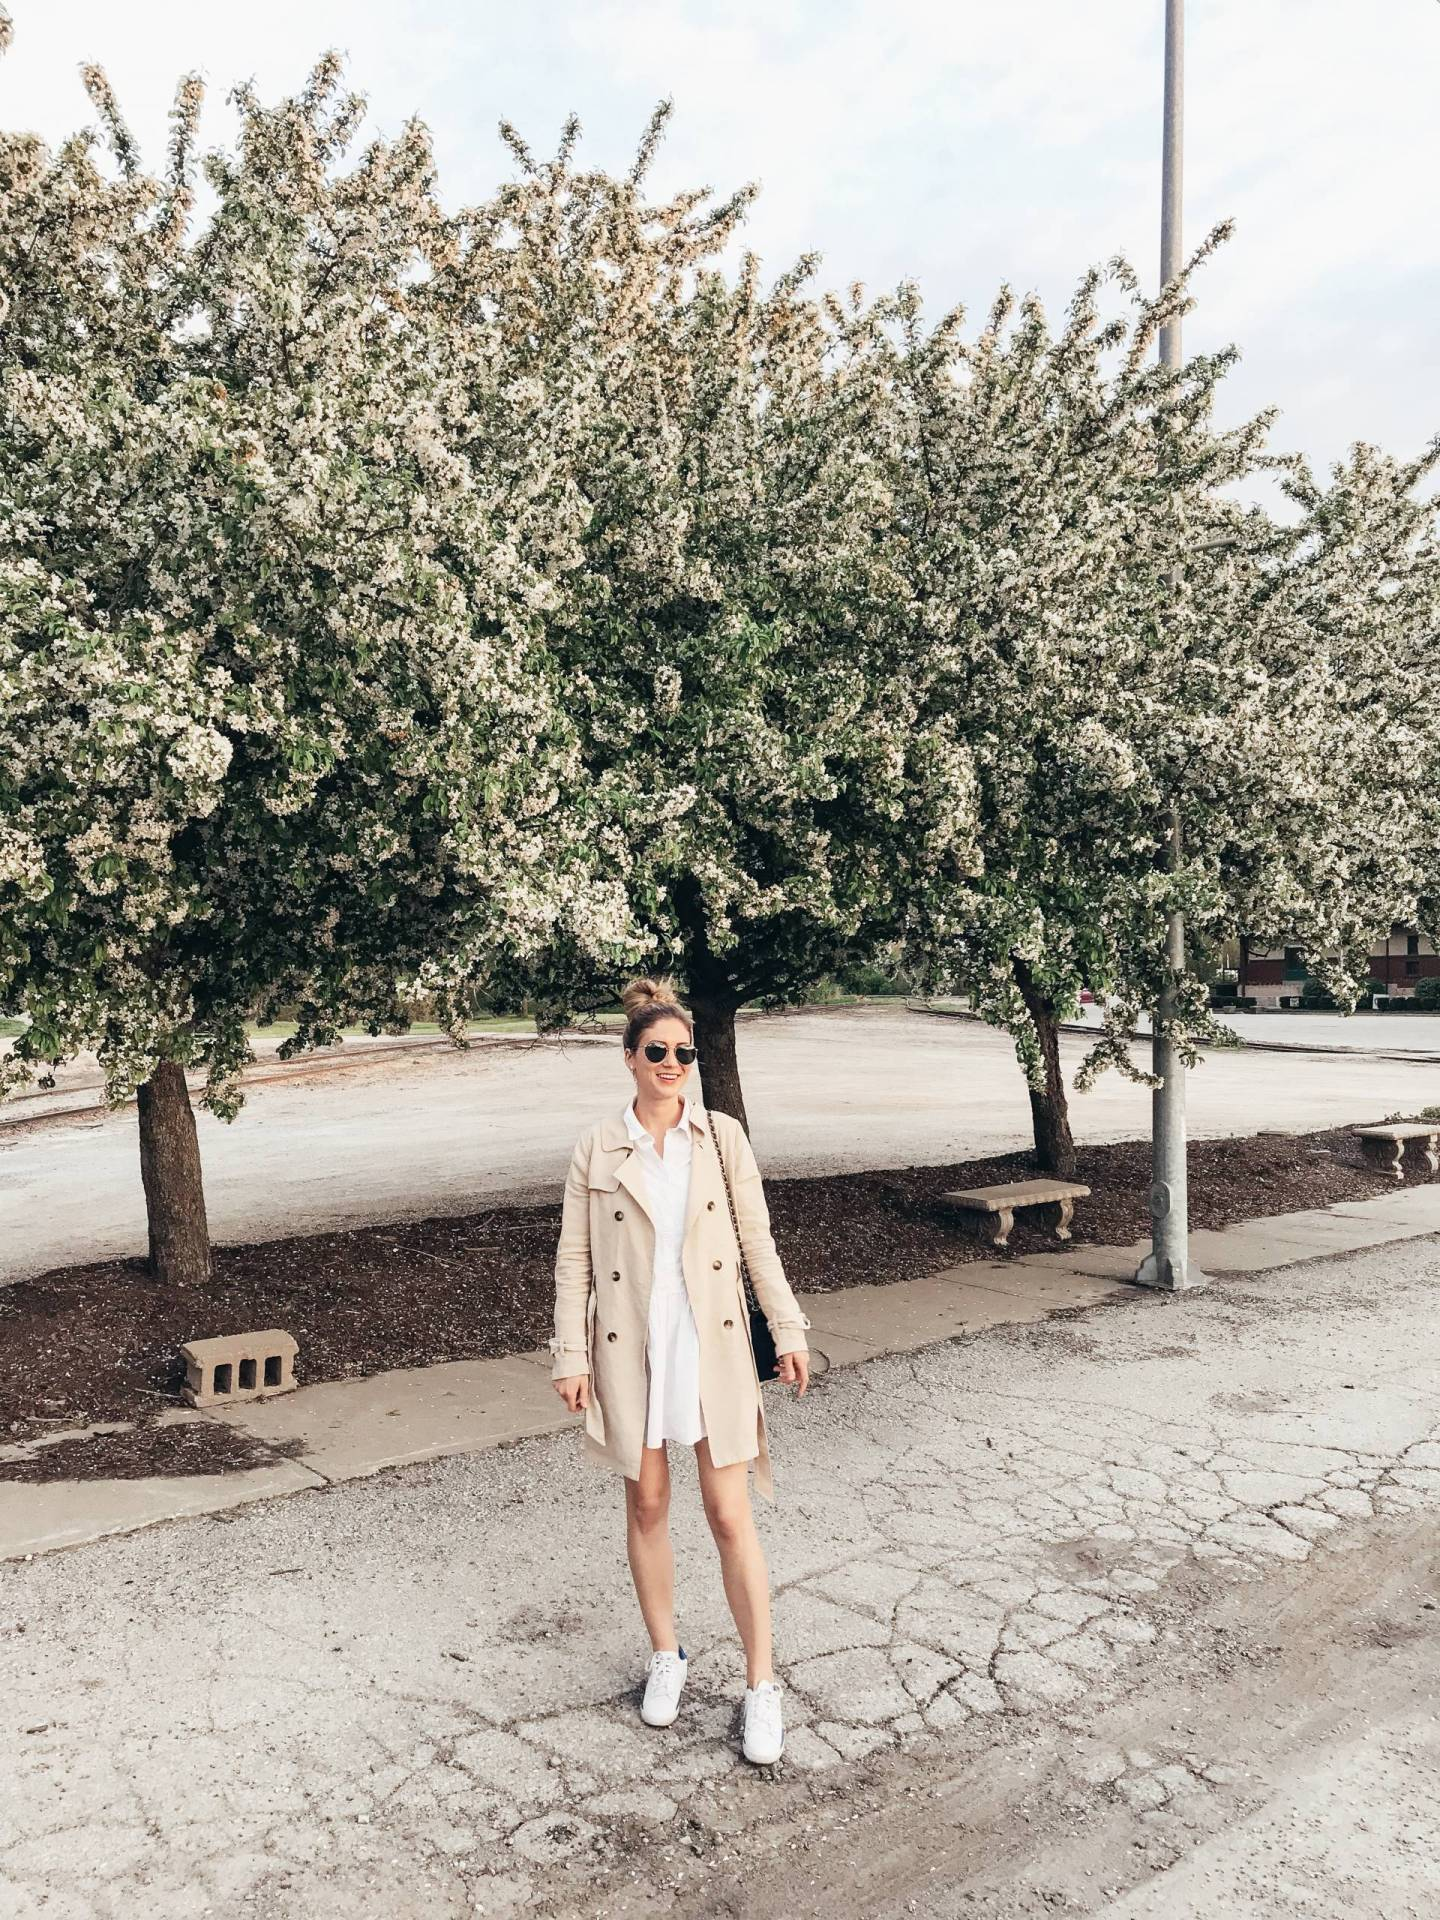 At this point Summer is dragging, but we still have weeks of warm weather left before Fall arrives. Click through for some end-of-Summer outfit inspiration!